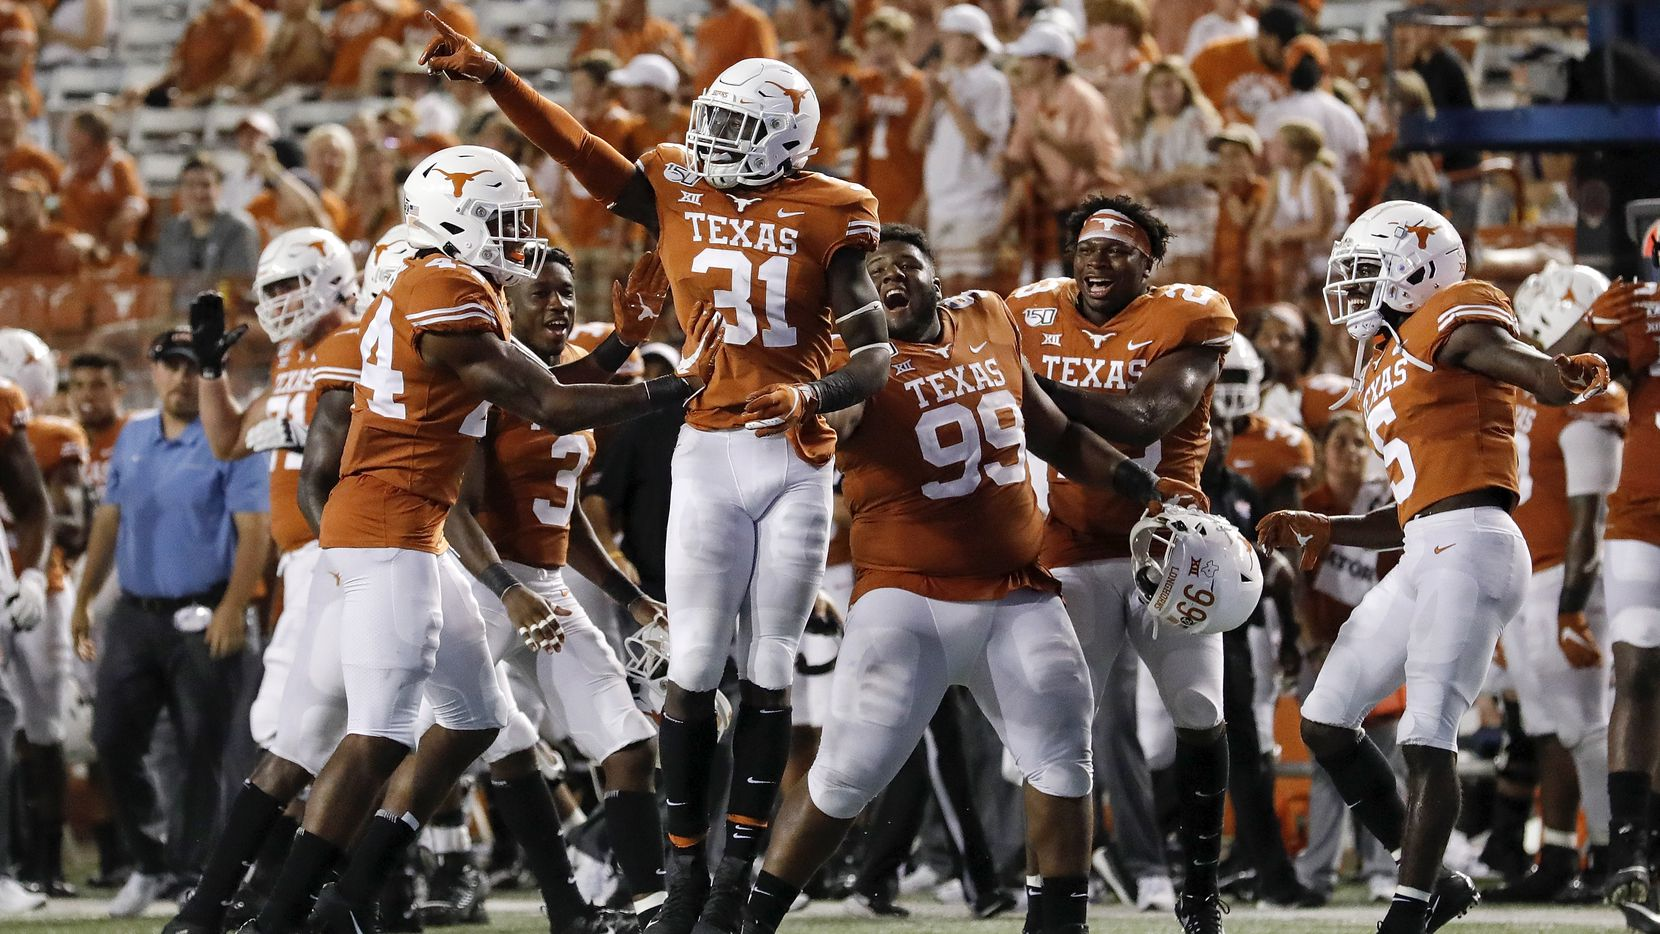 FILE - DeMarvion Overshown (31) of Texas celebrates with teammates after an interception in the fourth quarter against Louisiana Tech at Darrell K Royal-Texas Memorial Stadium on Aug. 31, 2019 in Austin.